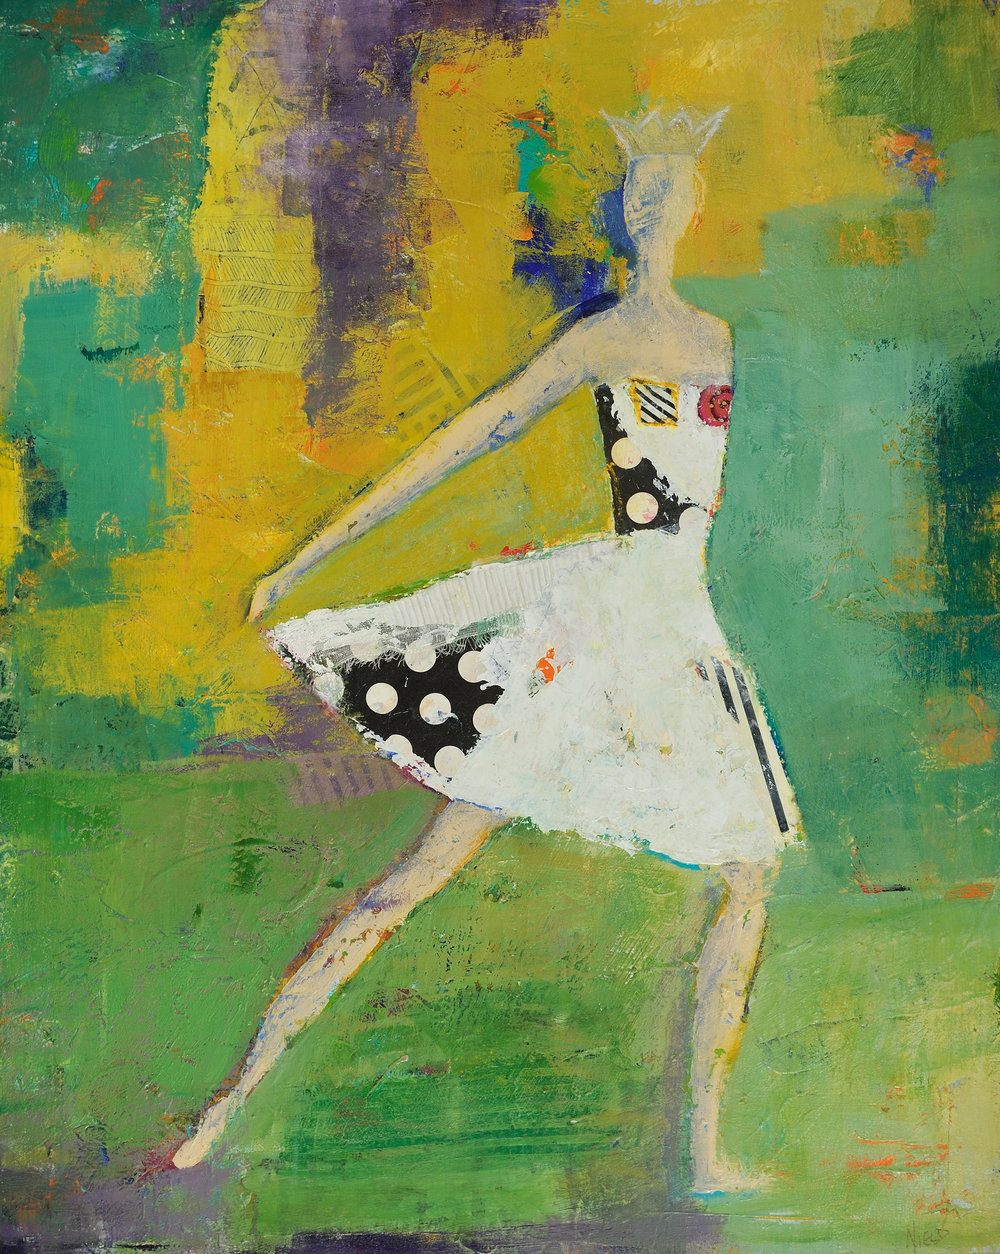 Foundry Gallery-Charlene Nield-Royal Ballet-30x22-acrylic with mixed media on panel=2018-$1,200.jpg